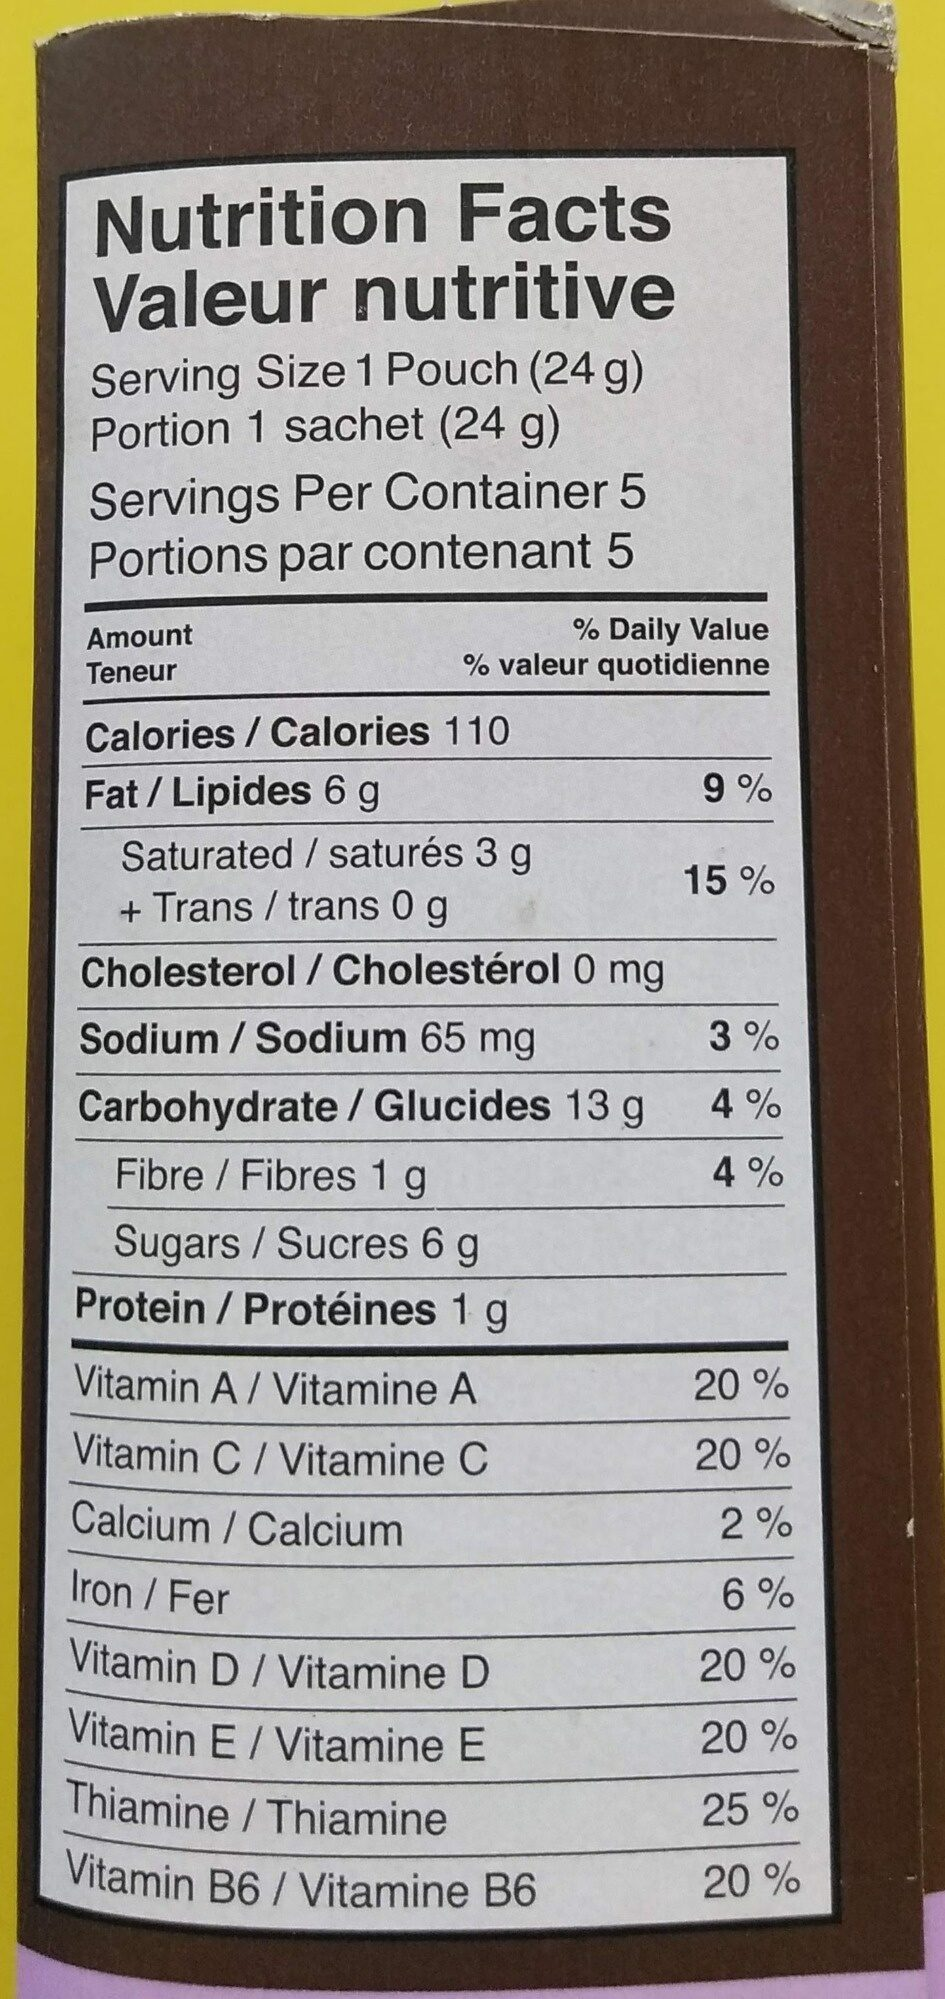 Soft Baked Mini Cookies Double Chocolate - Nutrition facts